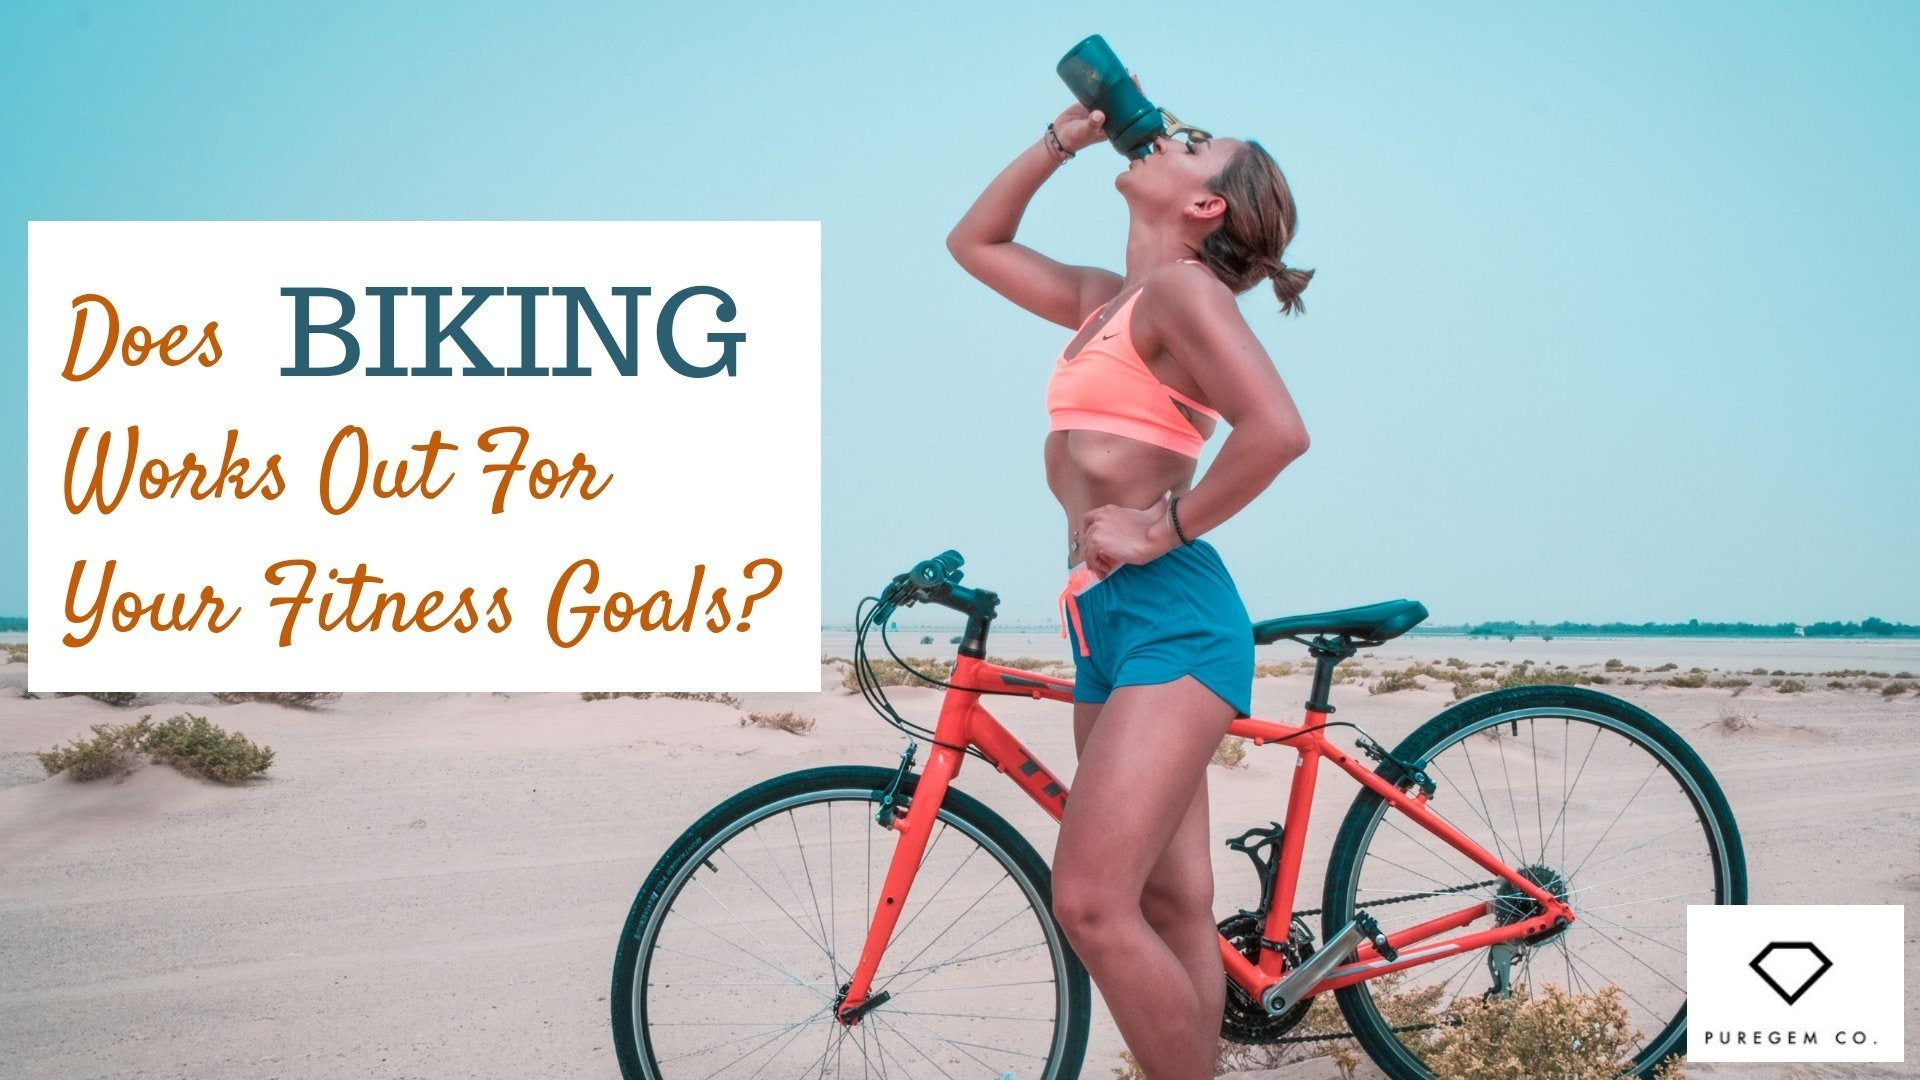 Does Biking Works Out For Your Fitness Goals?